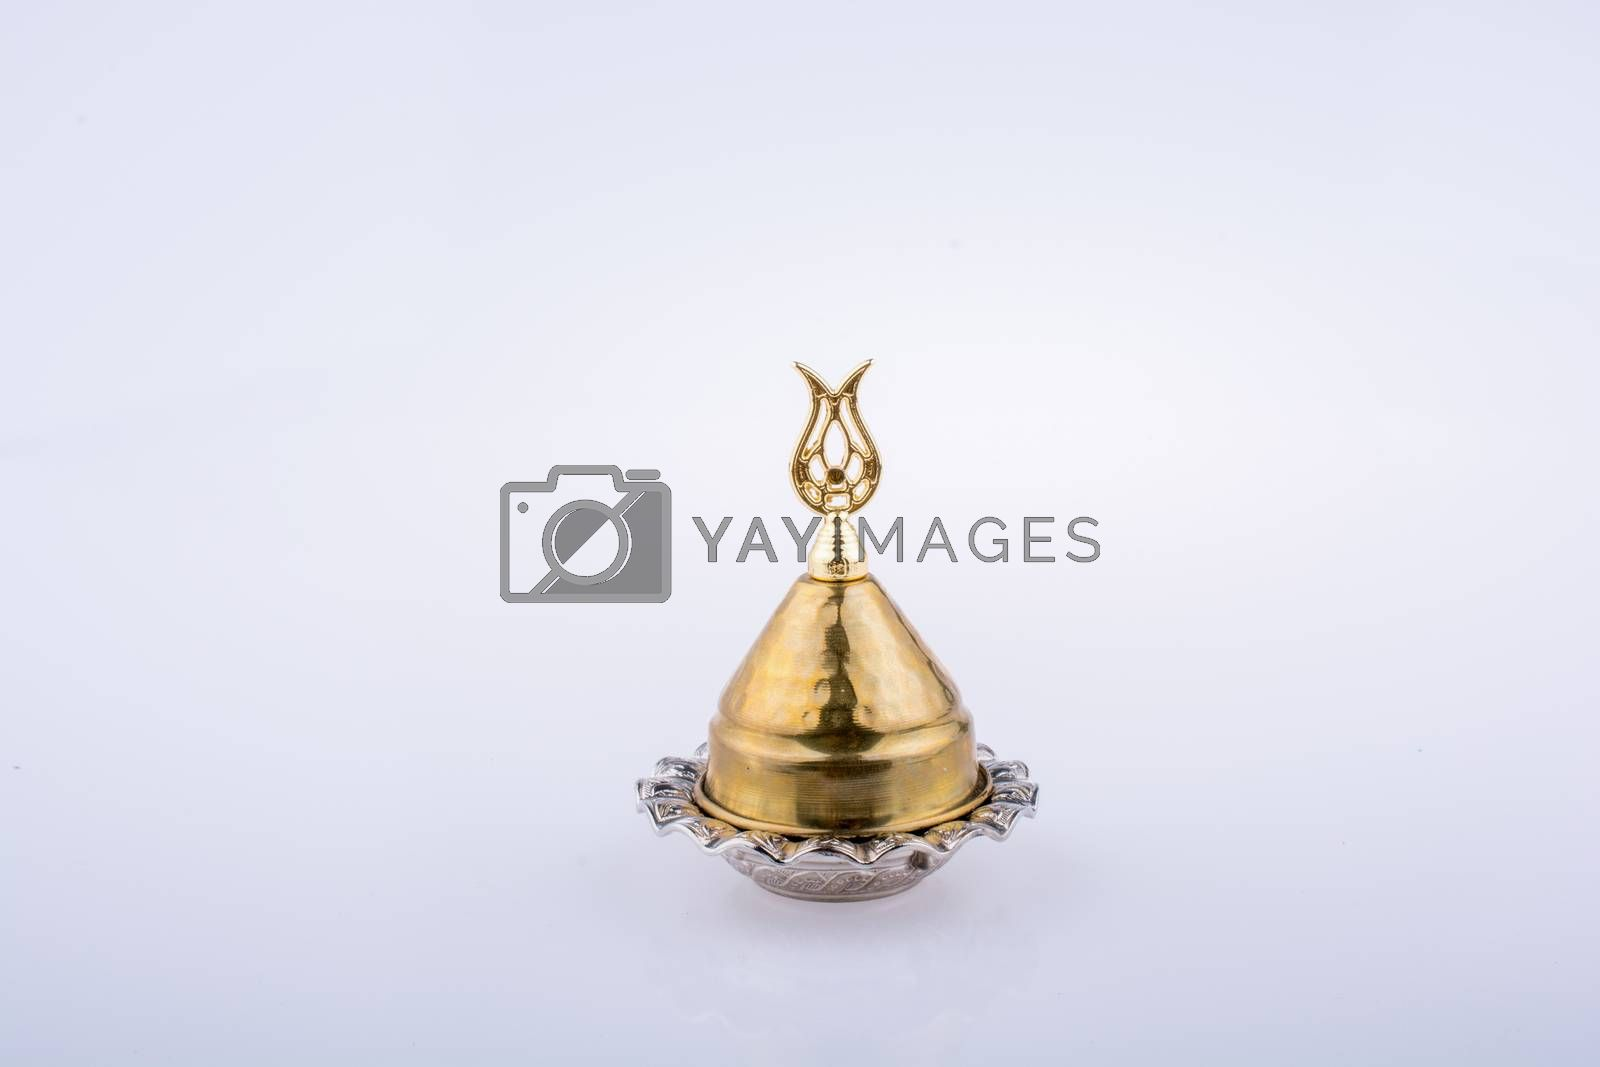 Tulip shape icon made of  metal